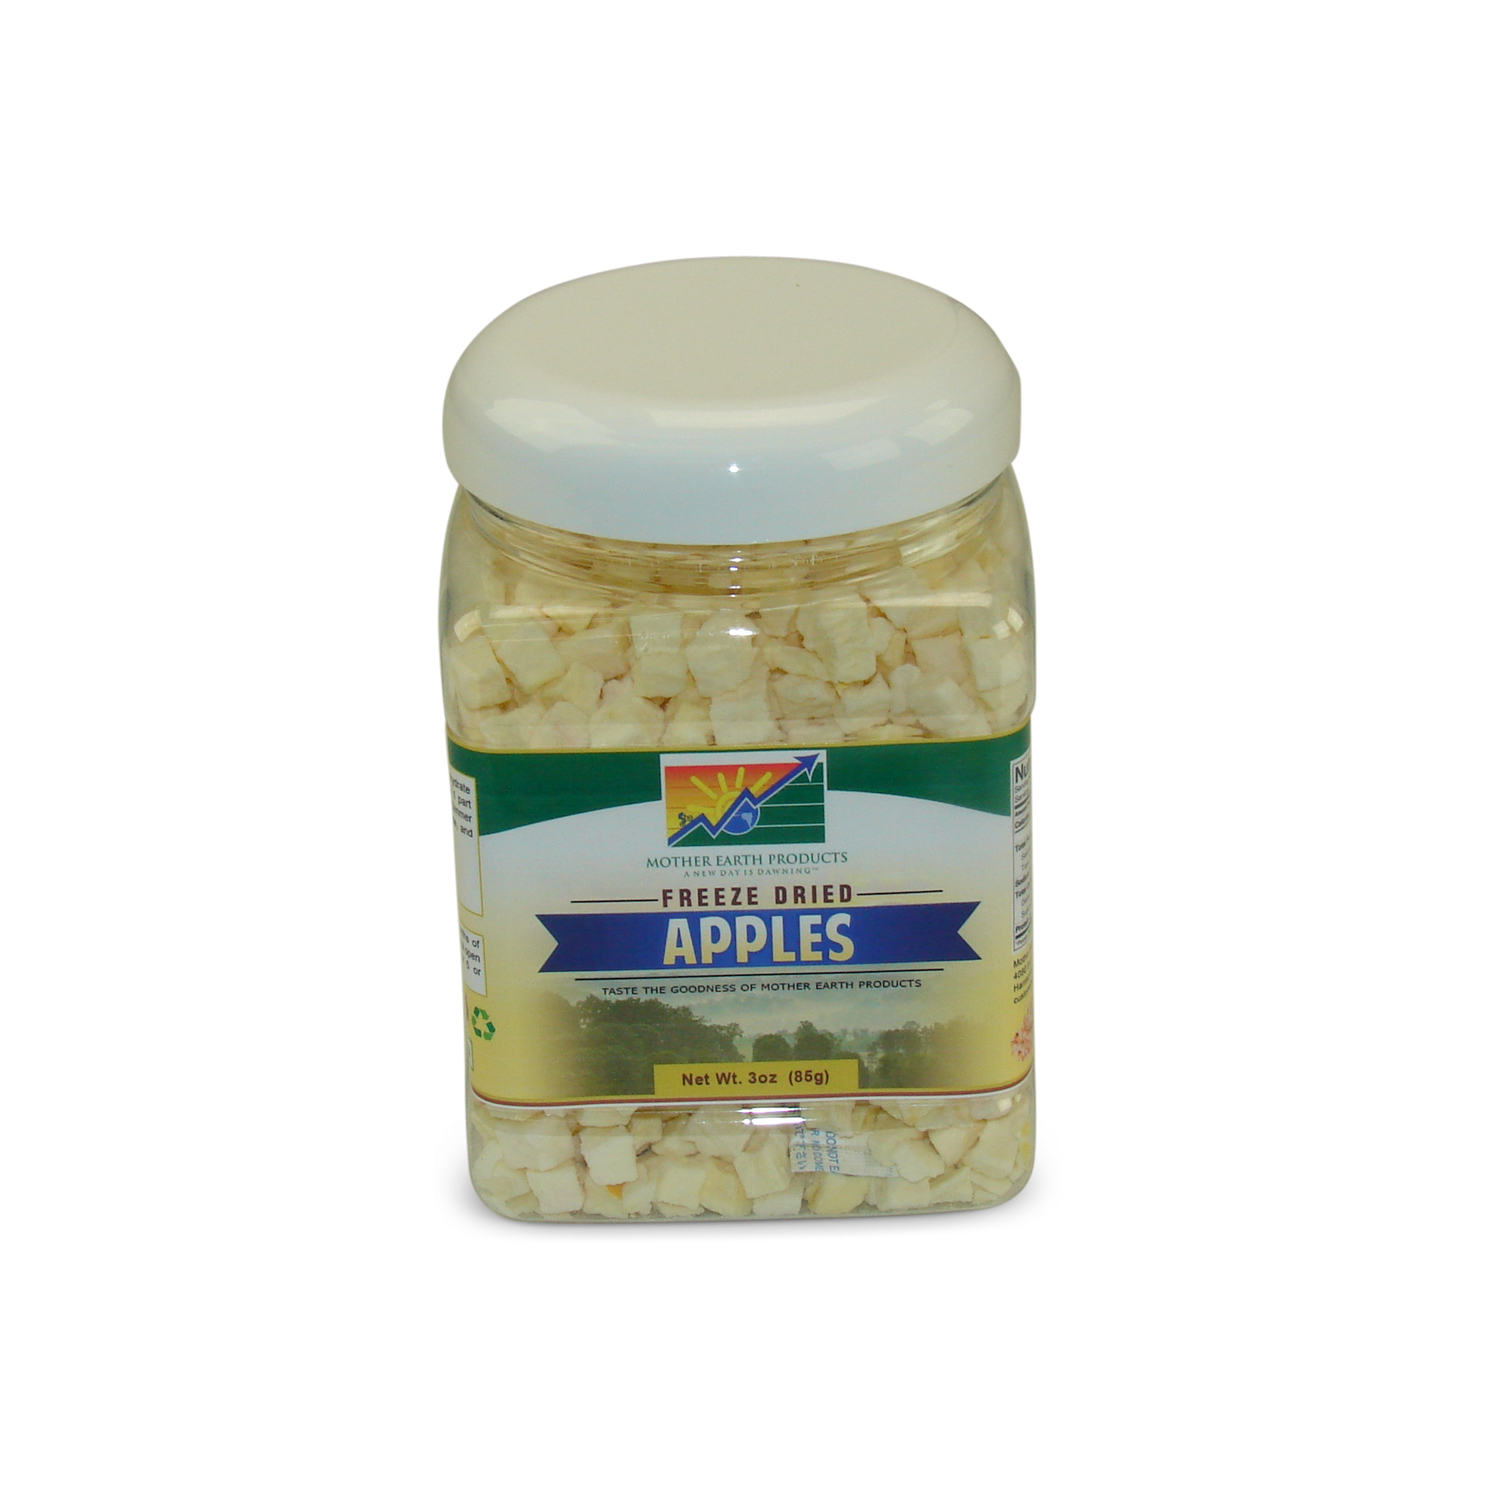 Mother Earth Products Freeze Dried Apples, jar by Mother Earth Products